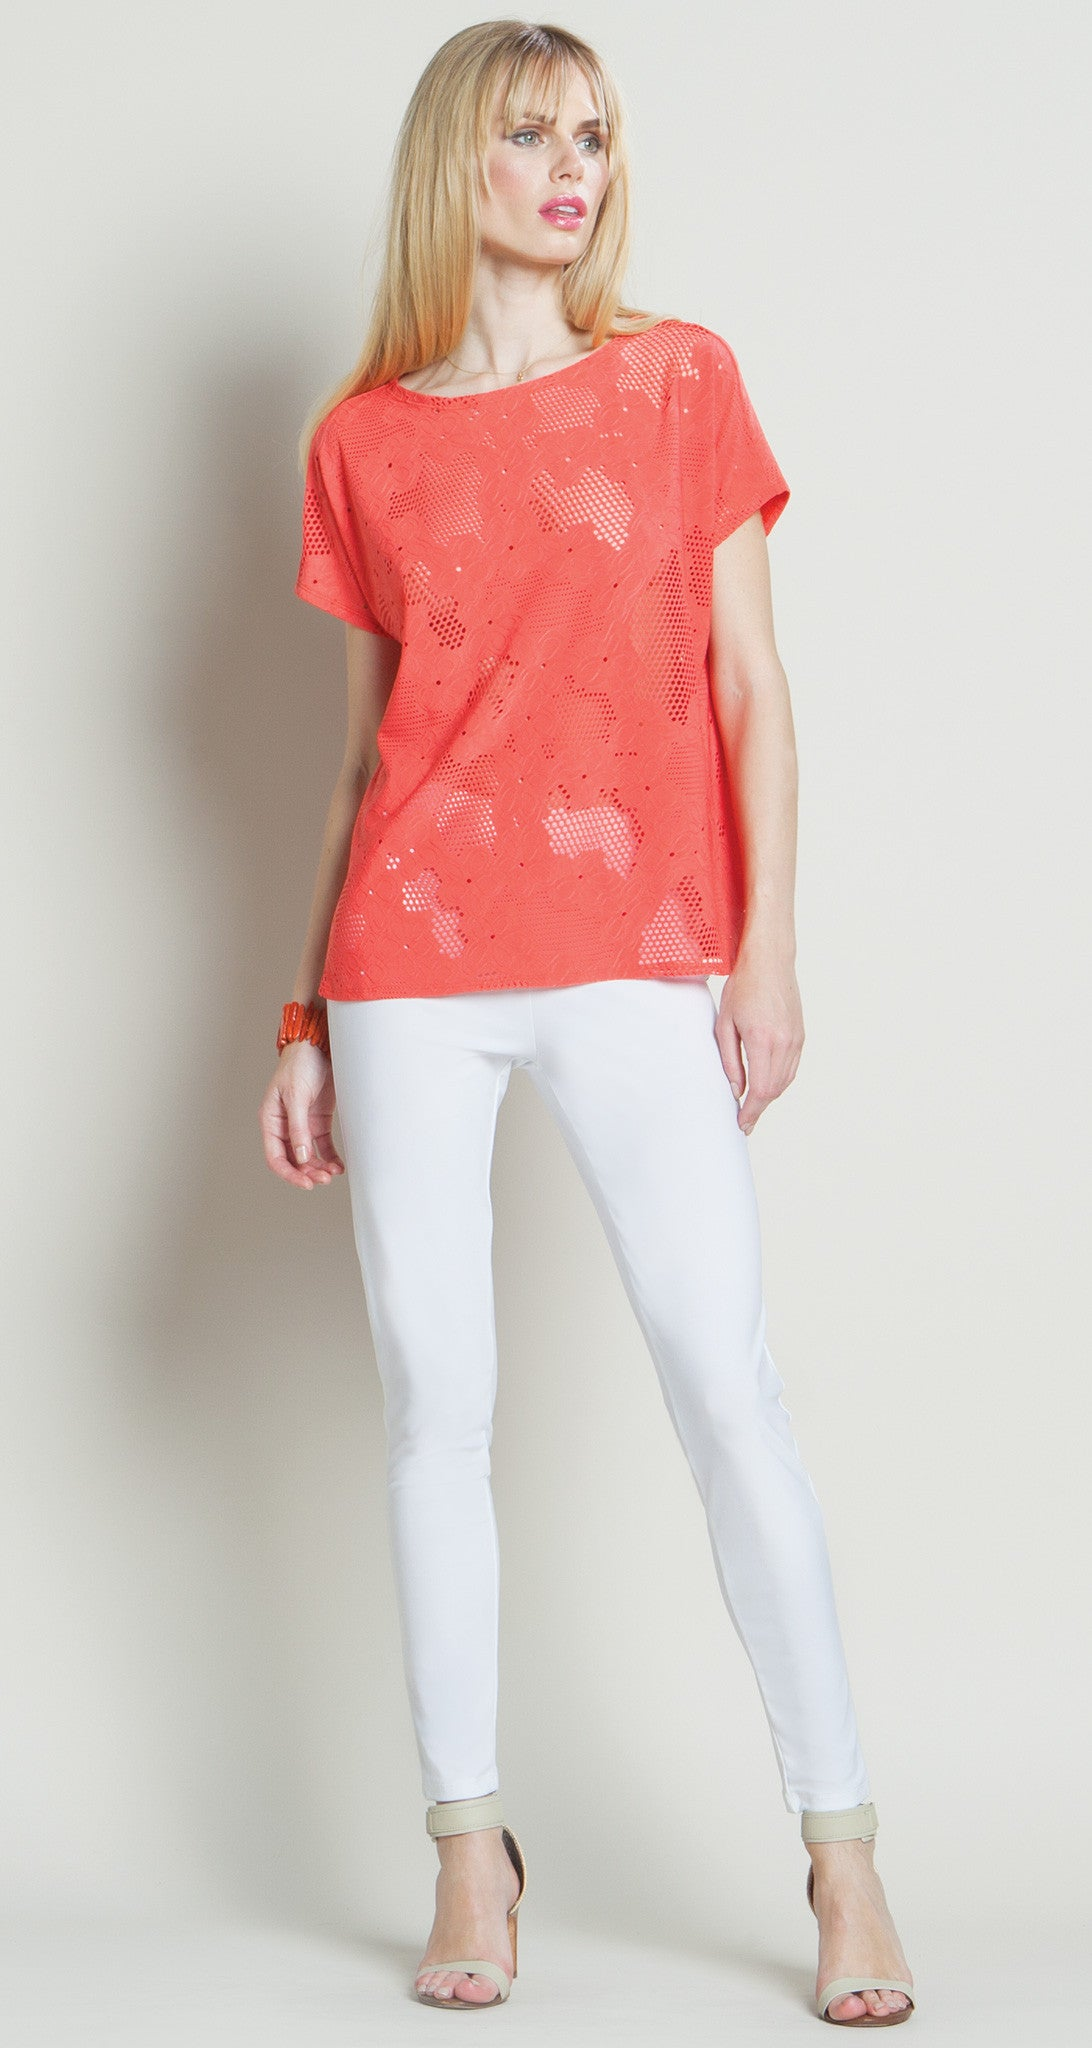 Eyelet Butter Soft Top - Coral - Final Sale! - Clara Sunwoo